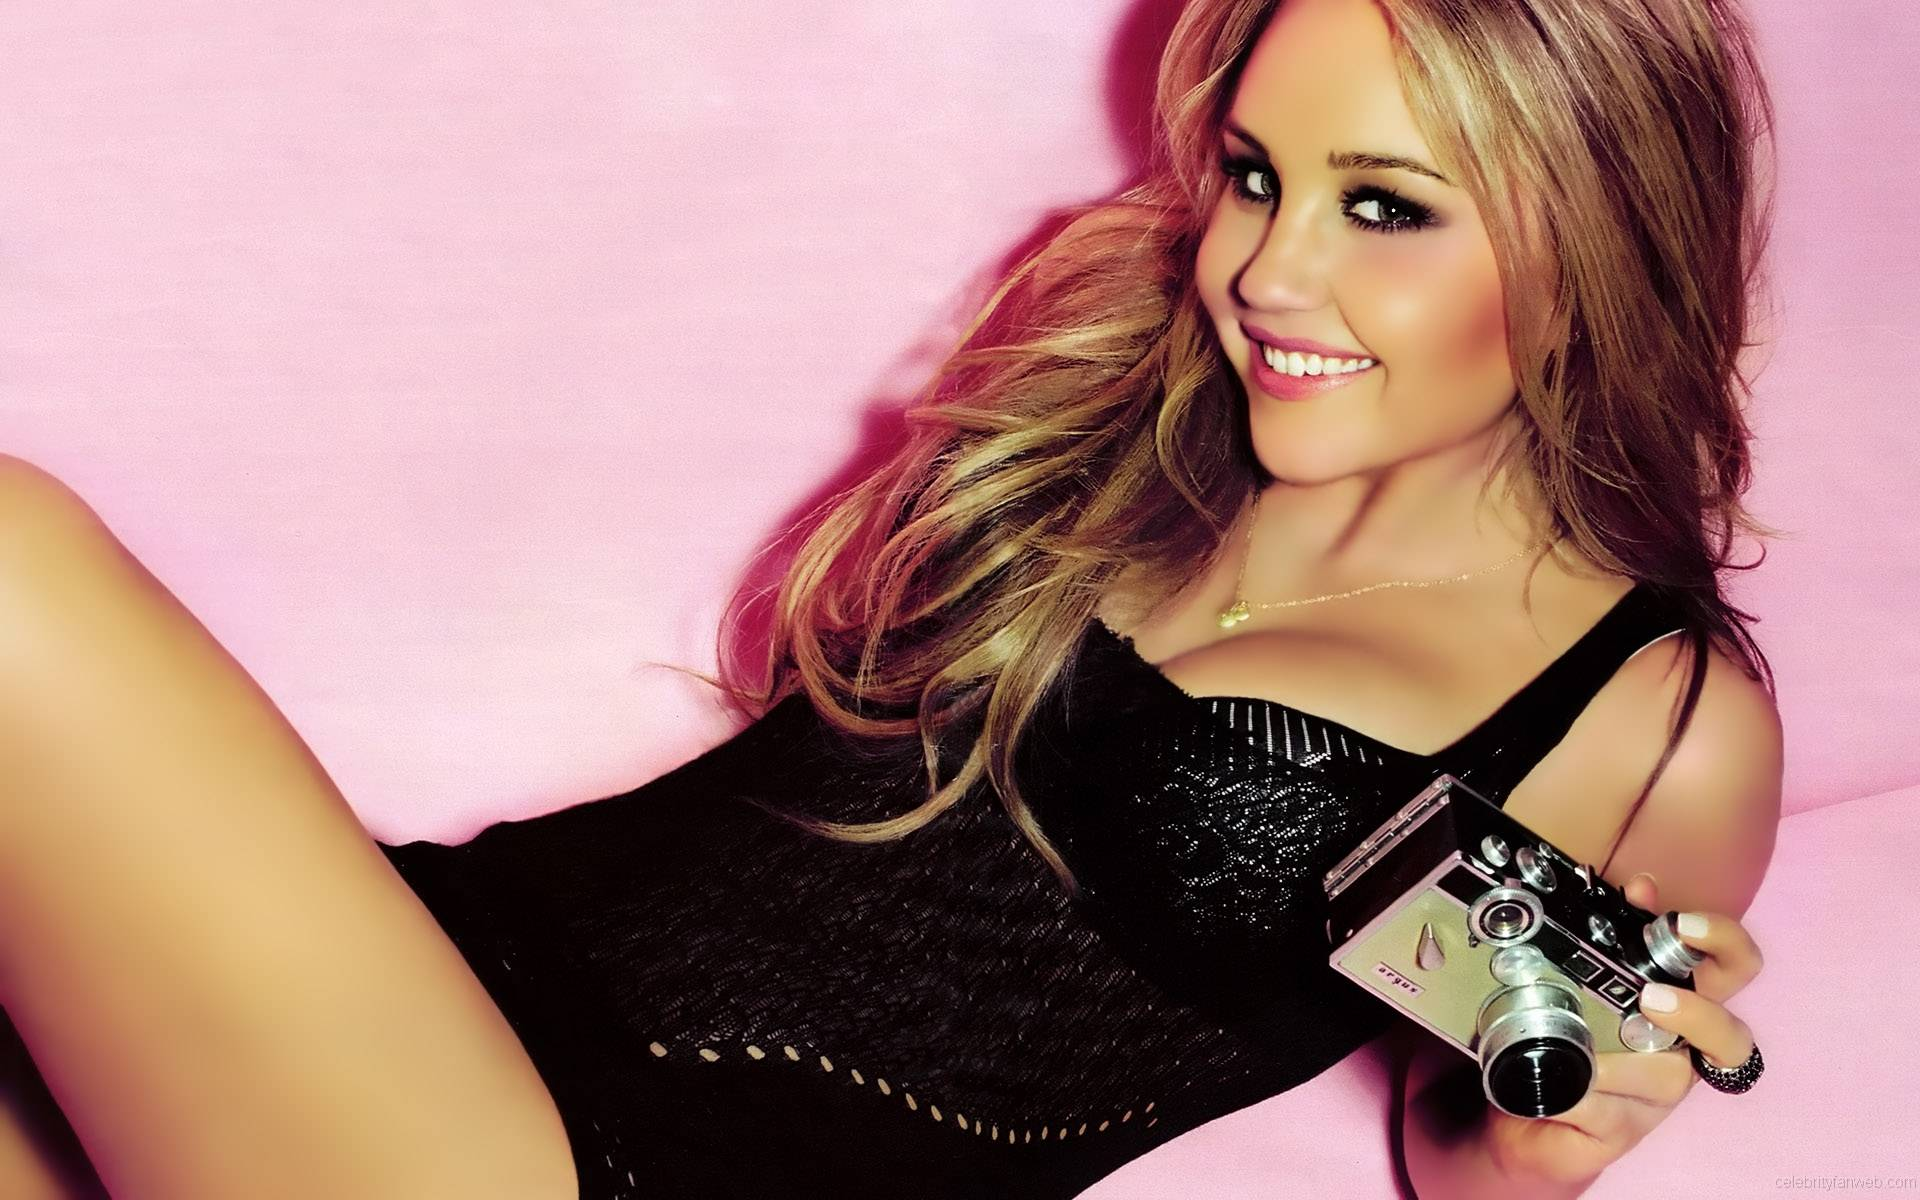 amanda bynes Widescreen Celebrity Wallpapers 1920x1200